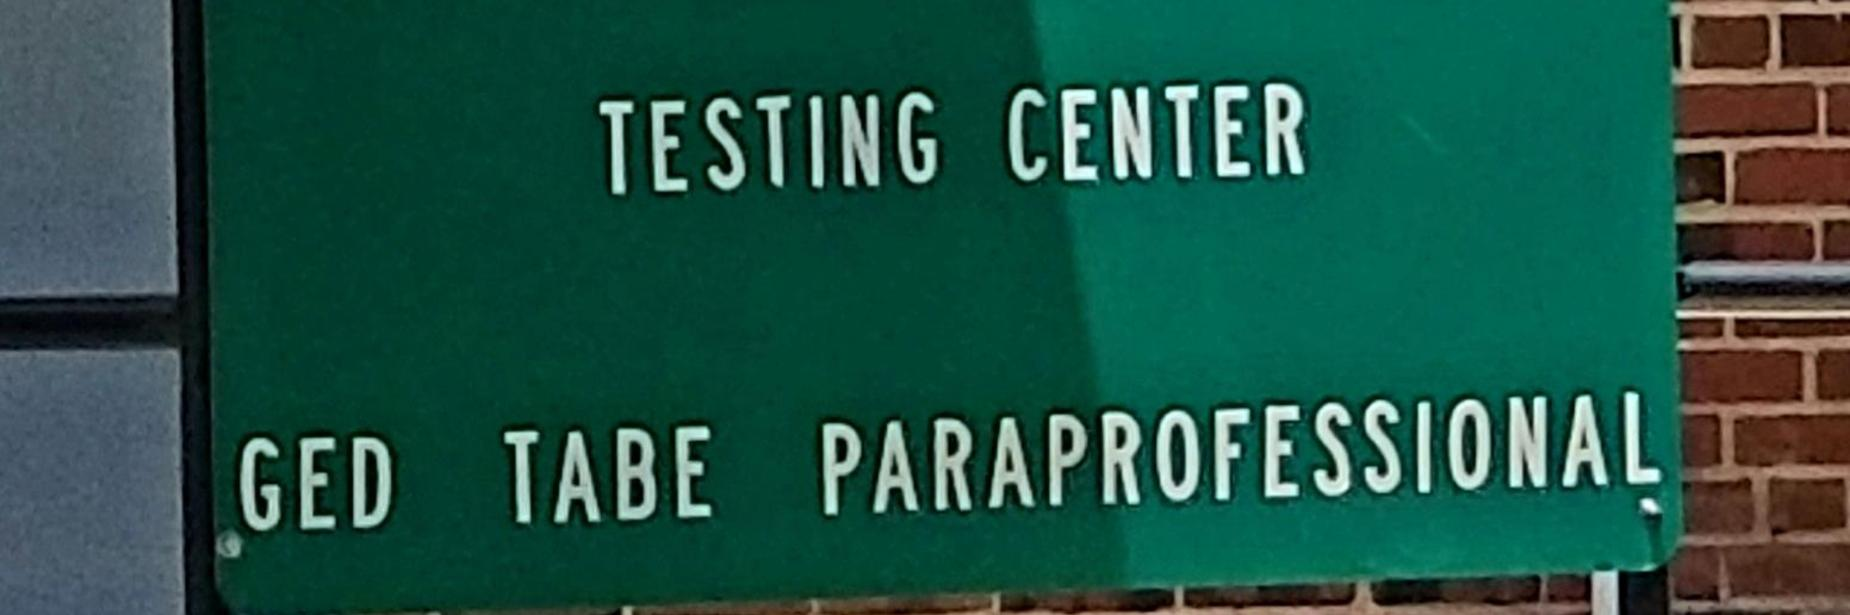 adult ed testing center sign